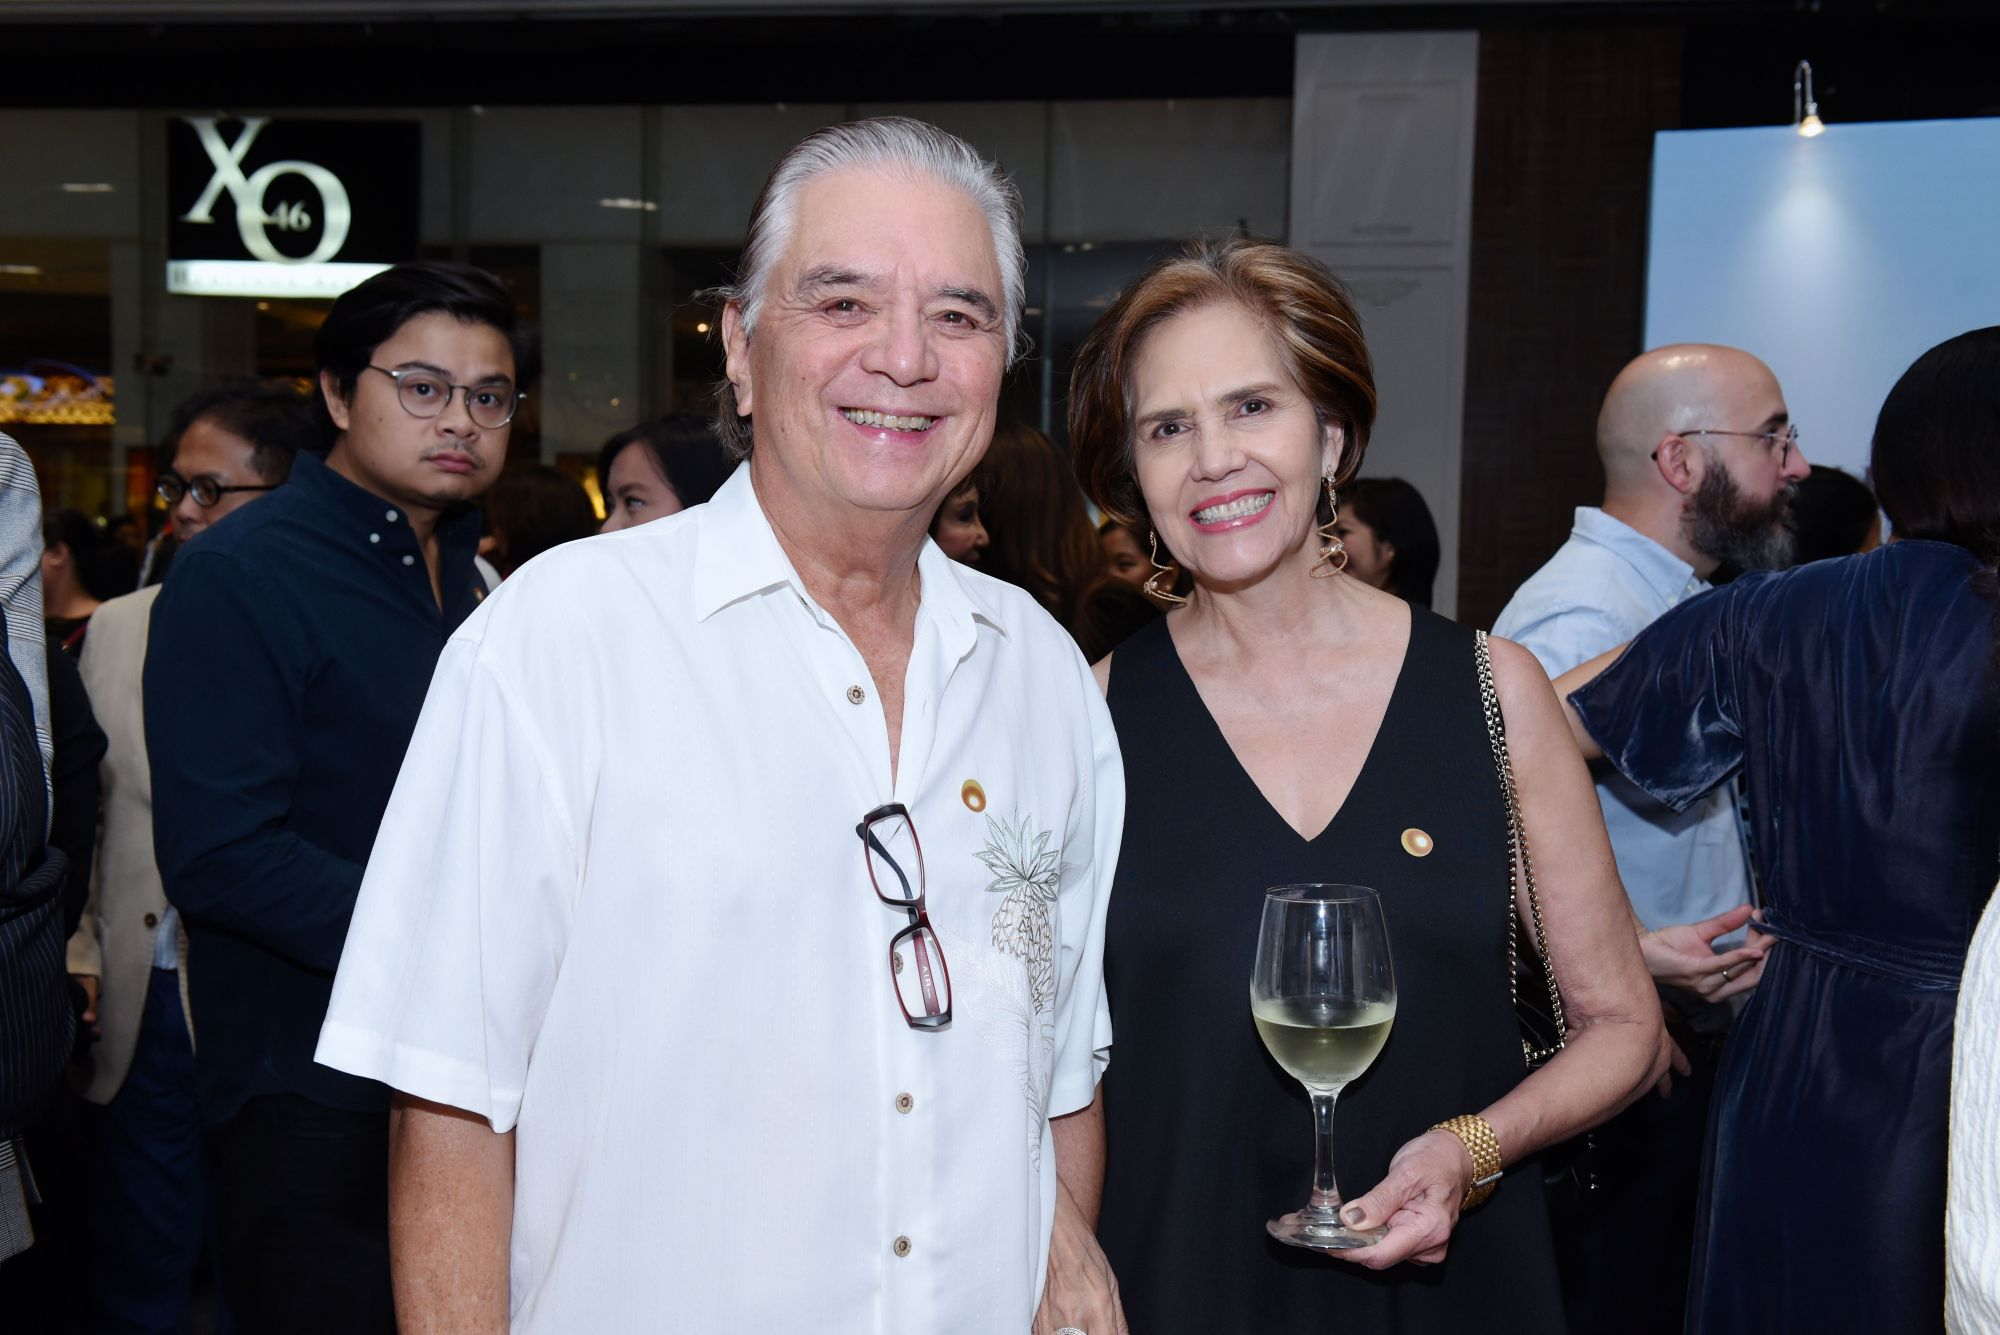 Linggoy Araneta with his wife Connie